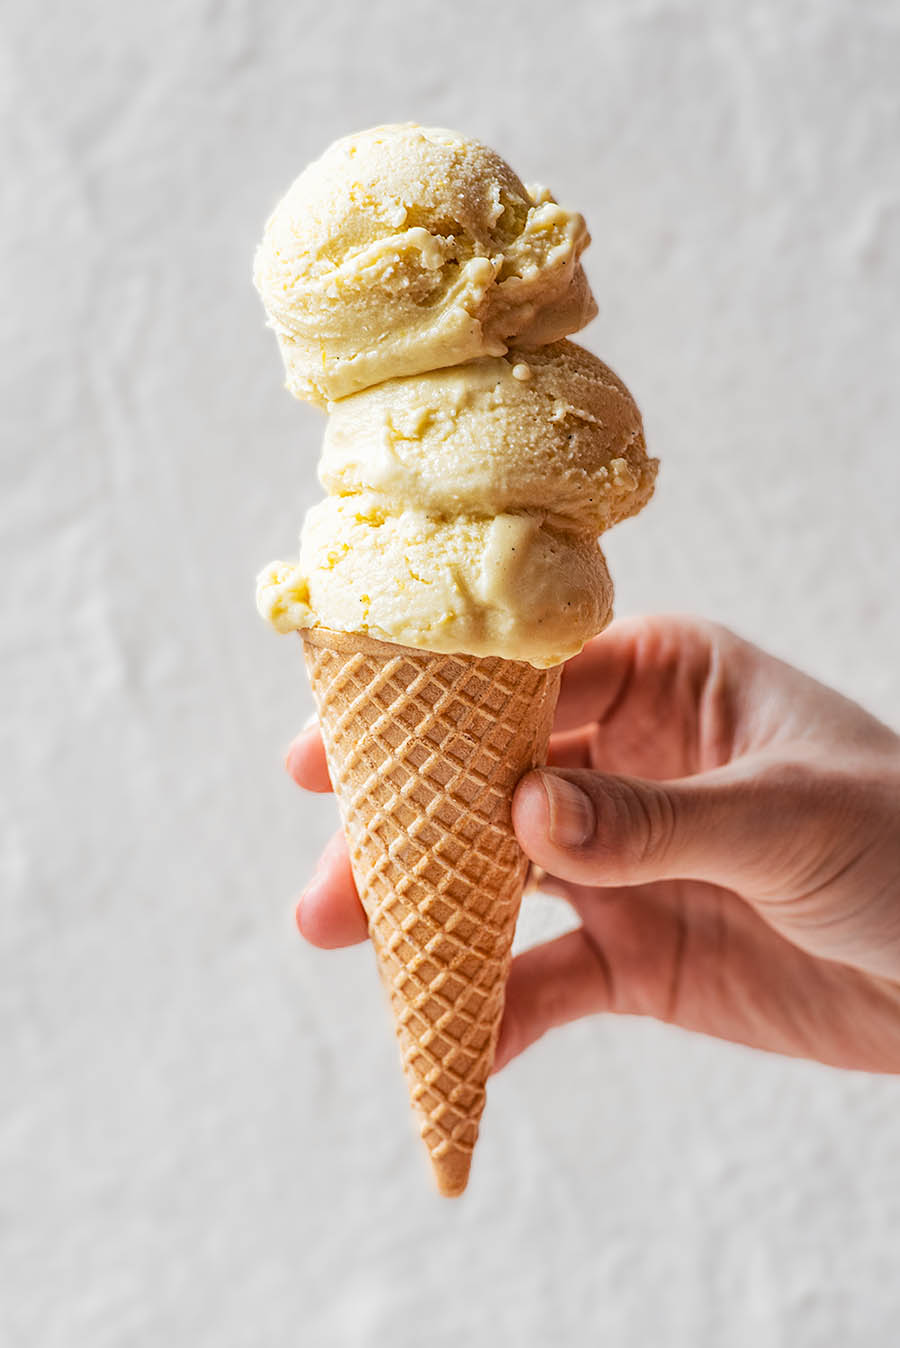 Hand holding a cone with three scoops of ice cream.